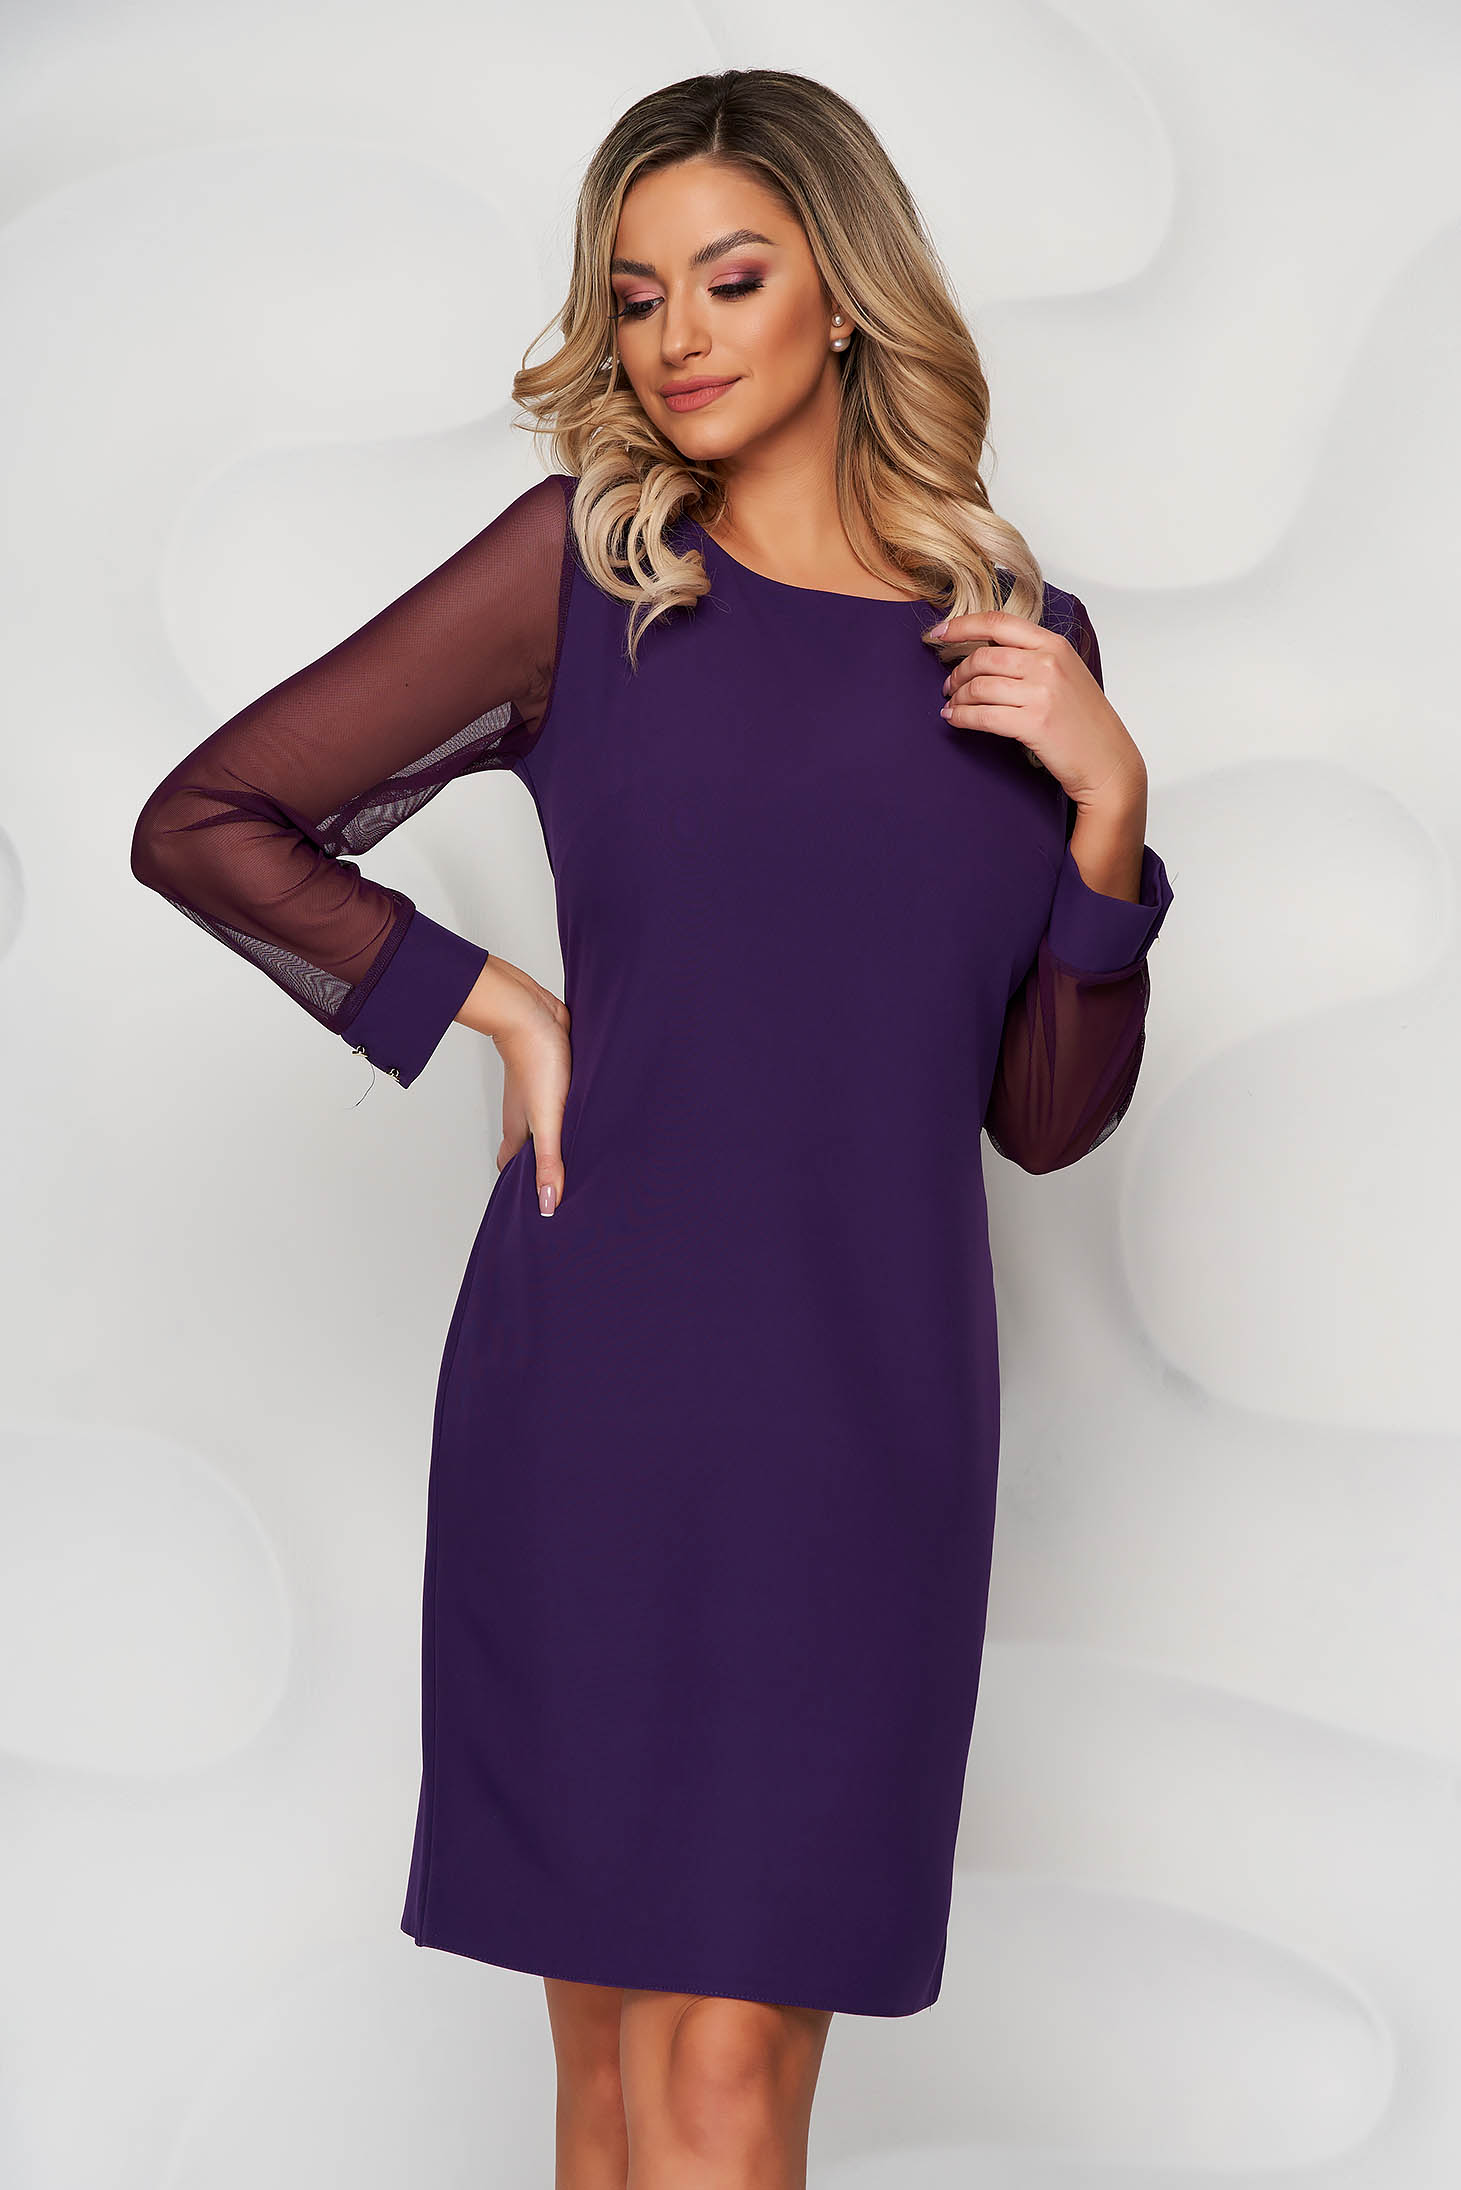 Purple dress transparent sleeves with puffed sleeves straight from elastic fabric